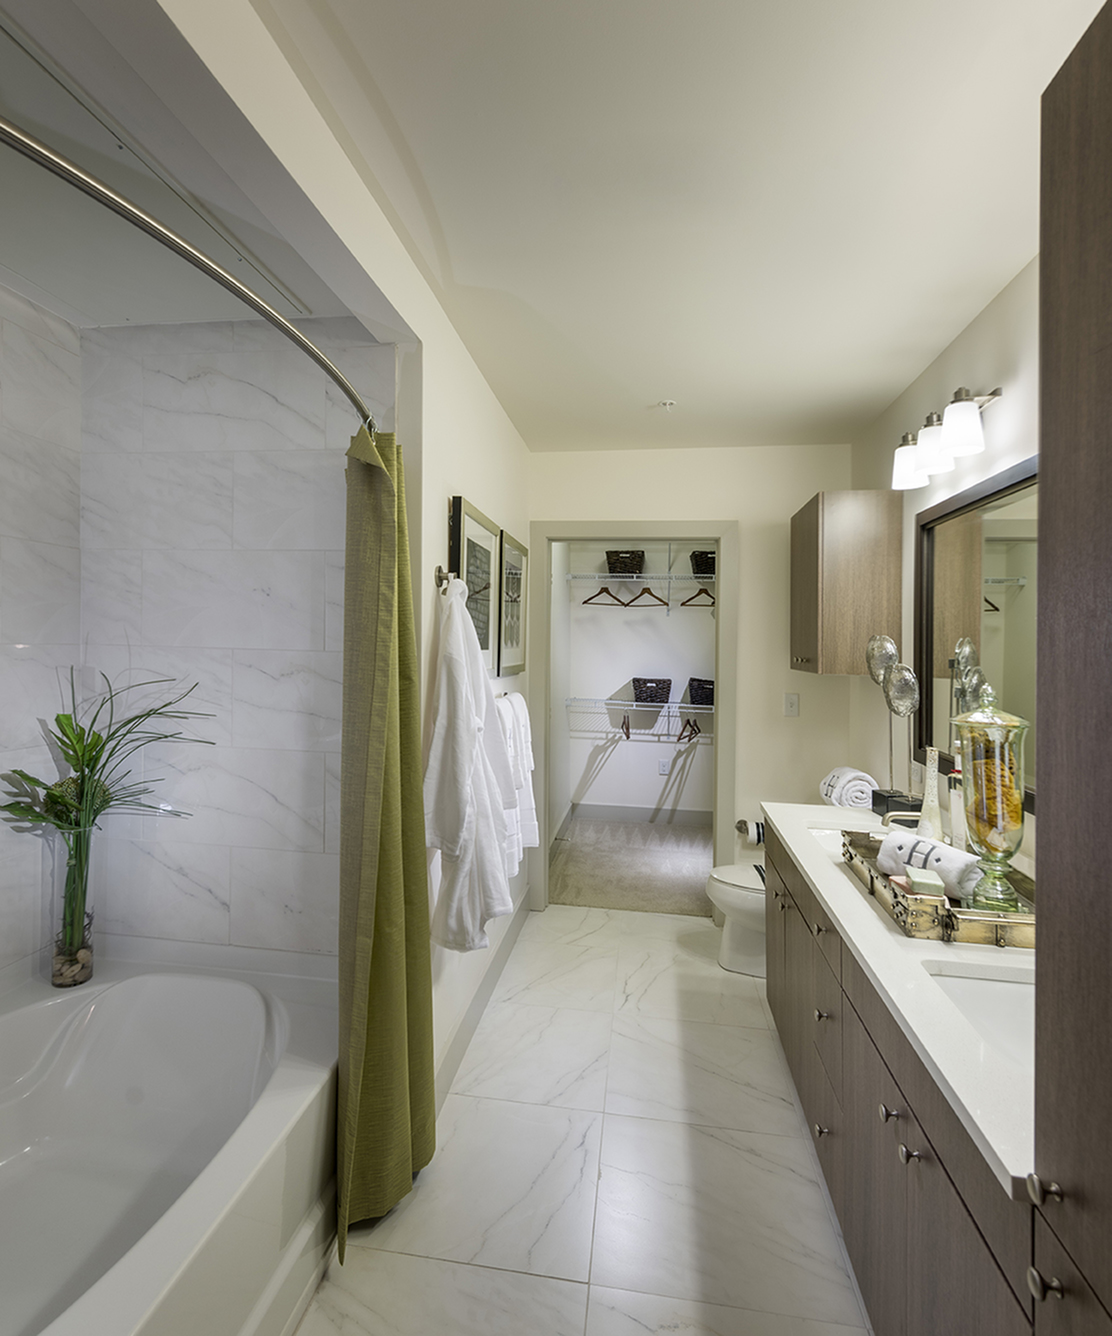 Image of Spa-inspired bathrooms with large soaking tub for Hanover Alewife